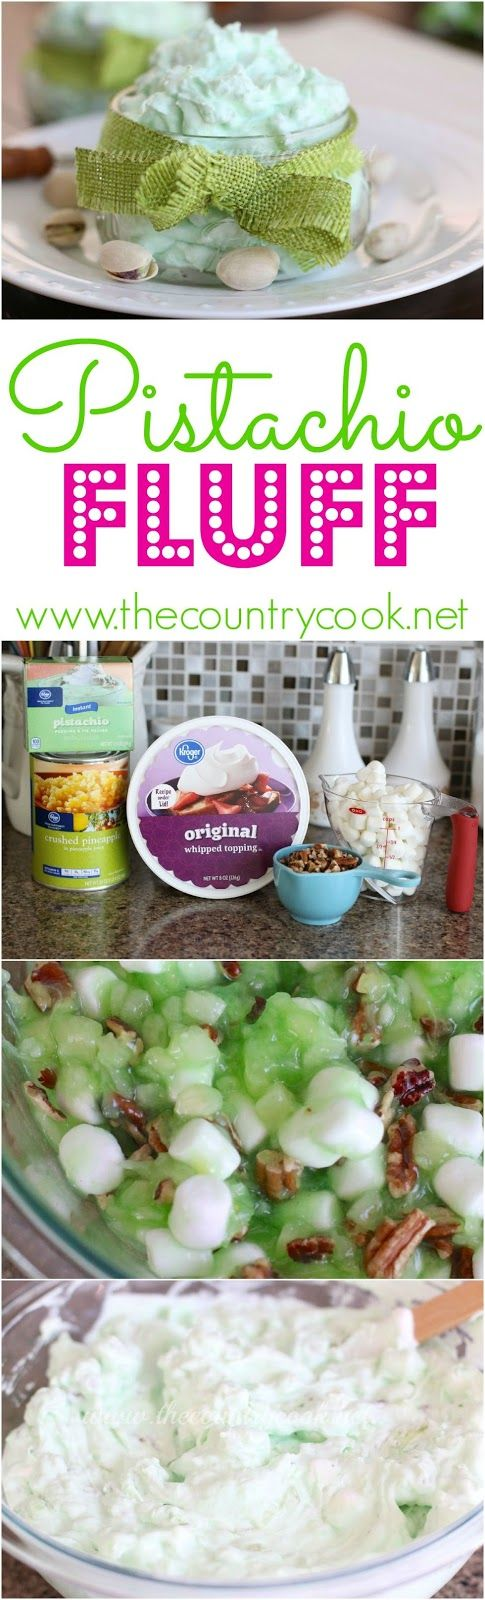 """Pistachio Fluff recipe from The Country Cook. Also known as """"Green Stuff"""" or Watergate Salad. No bake, simple ingredients and my family loves them. More fluff recipes when you click on the link."""